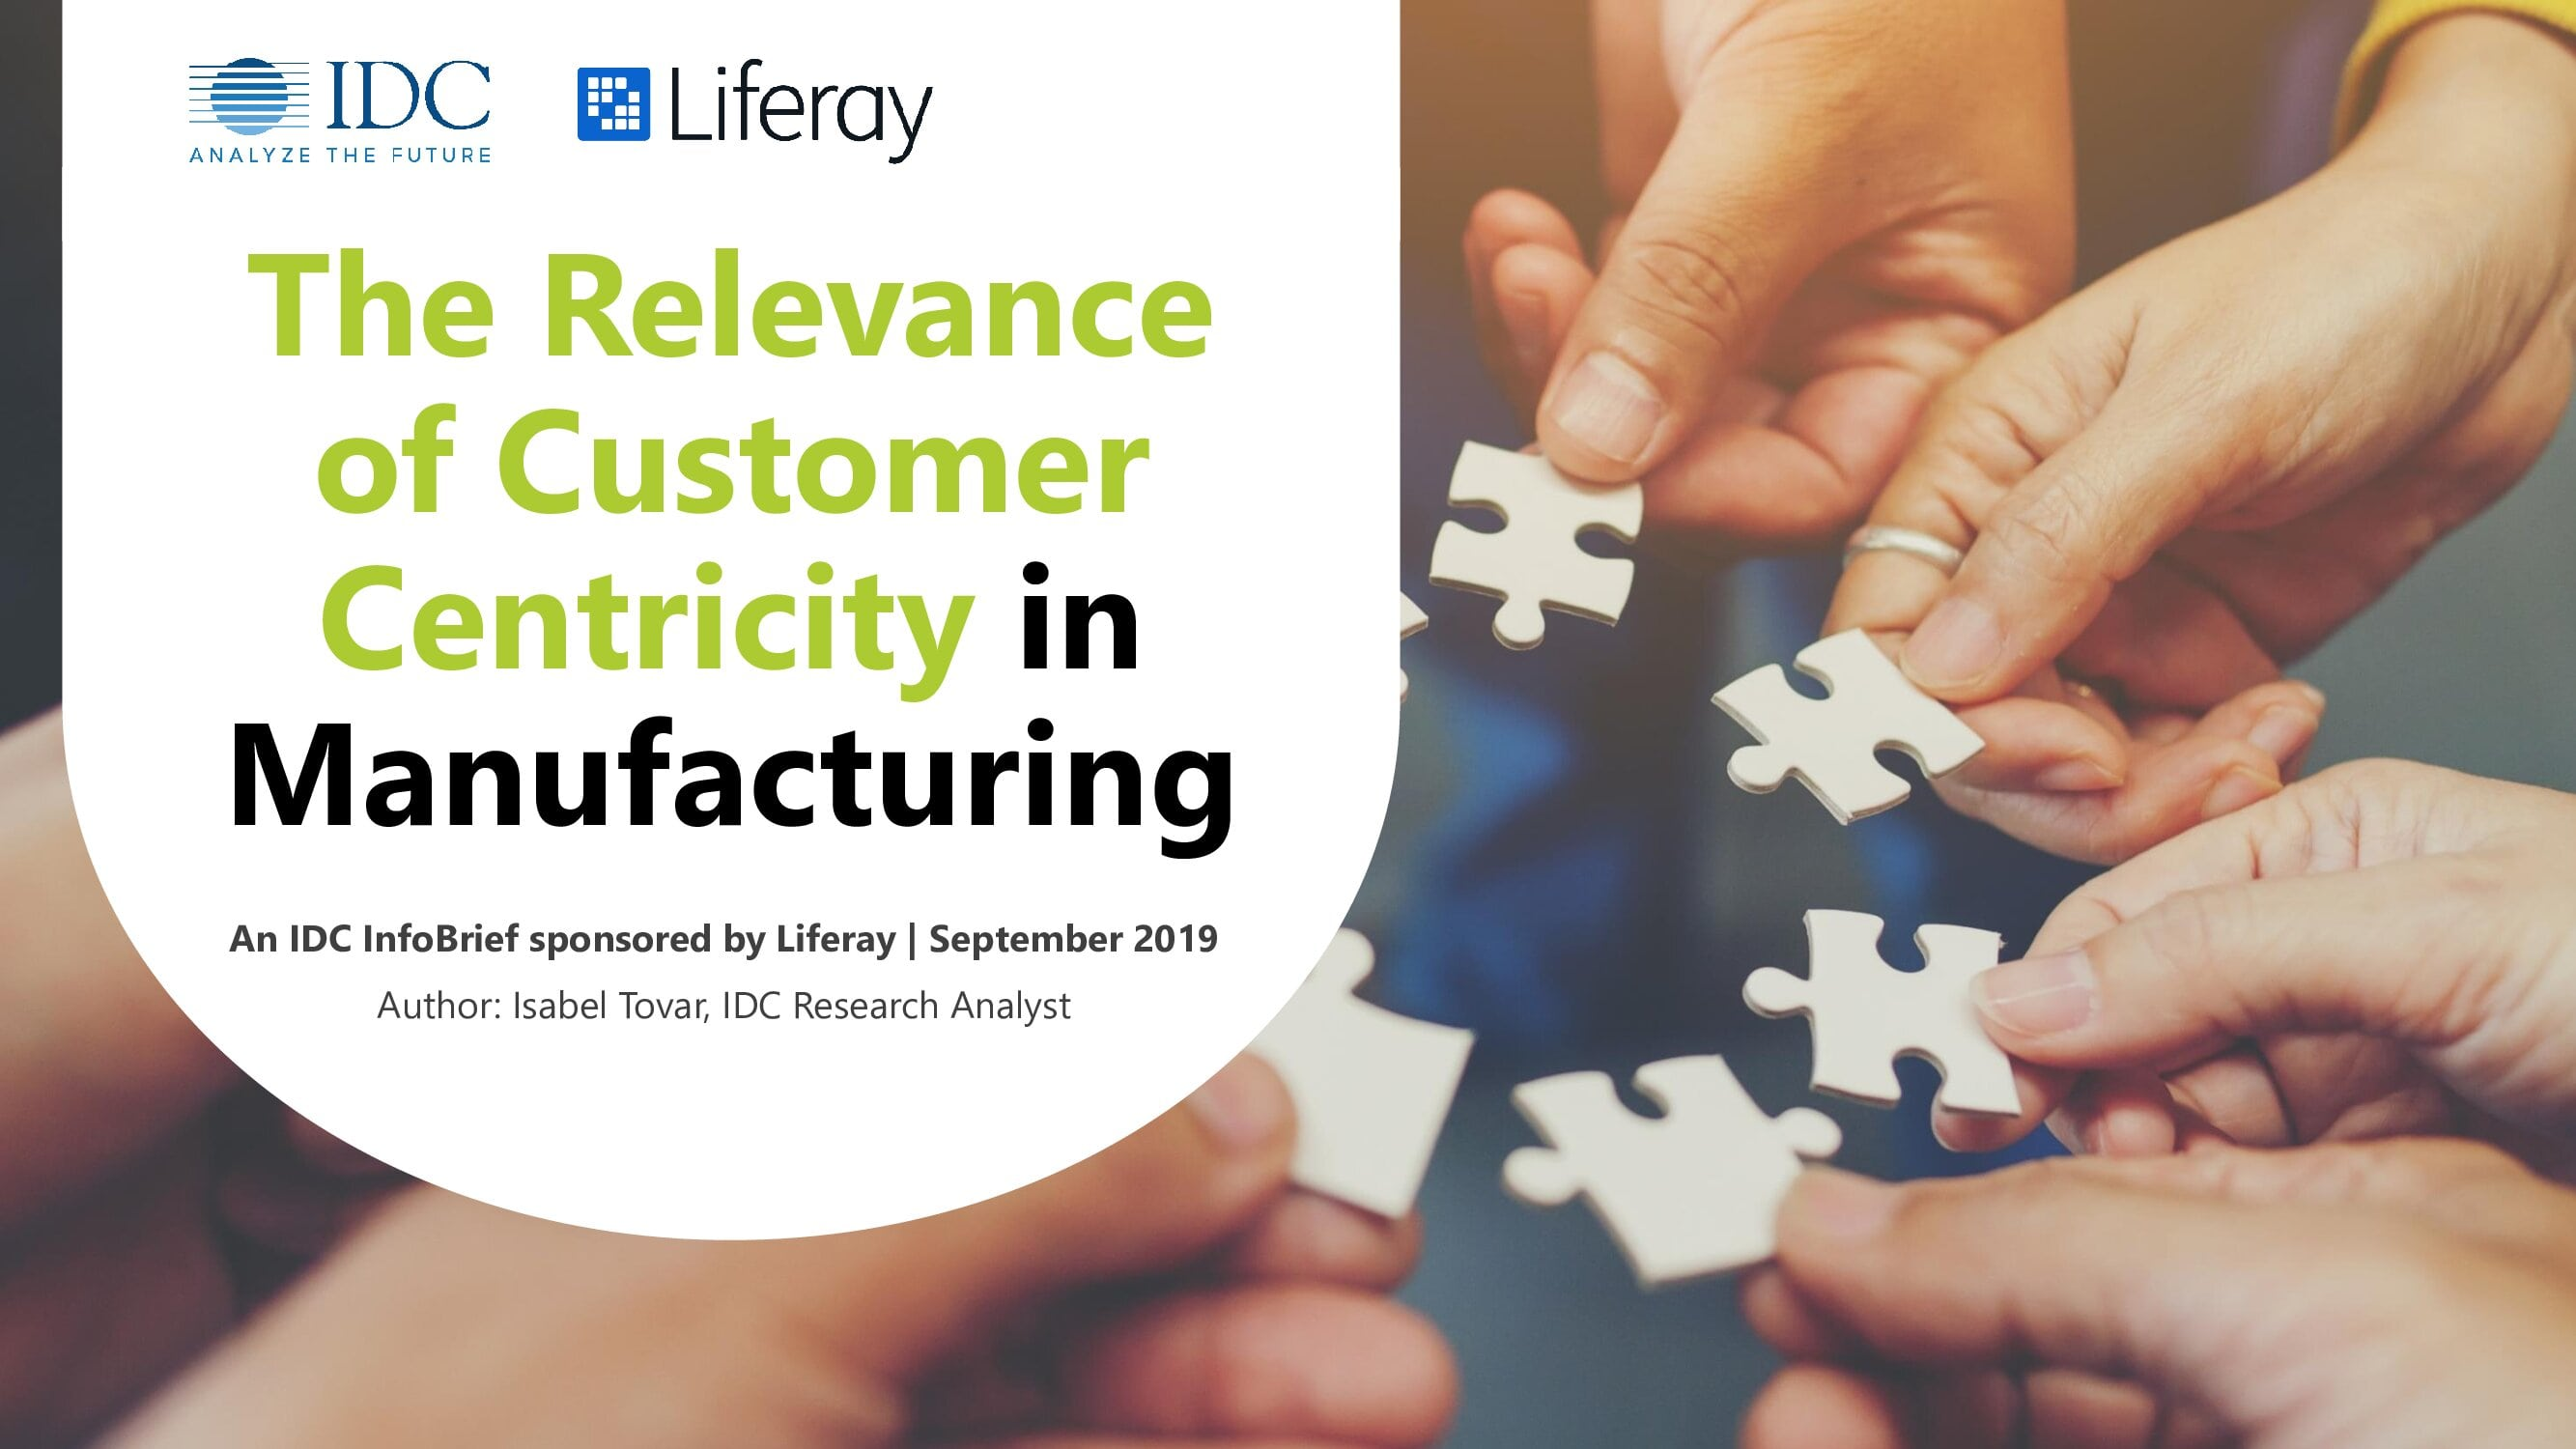 idc_infobrief_the_relevance_of_customer_centricity_in_manufacturing_000.jpg